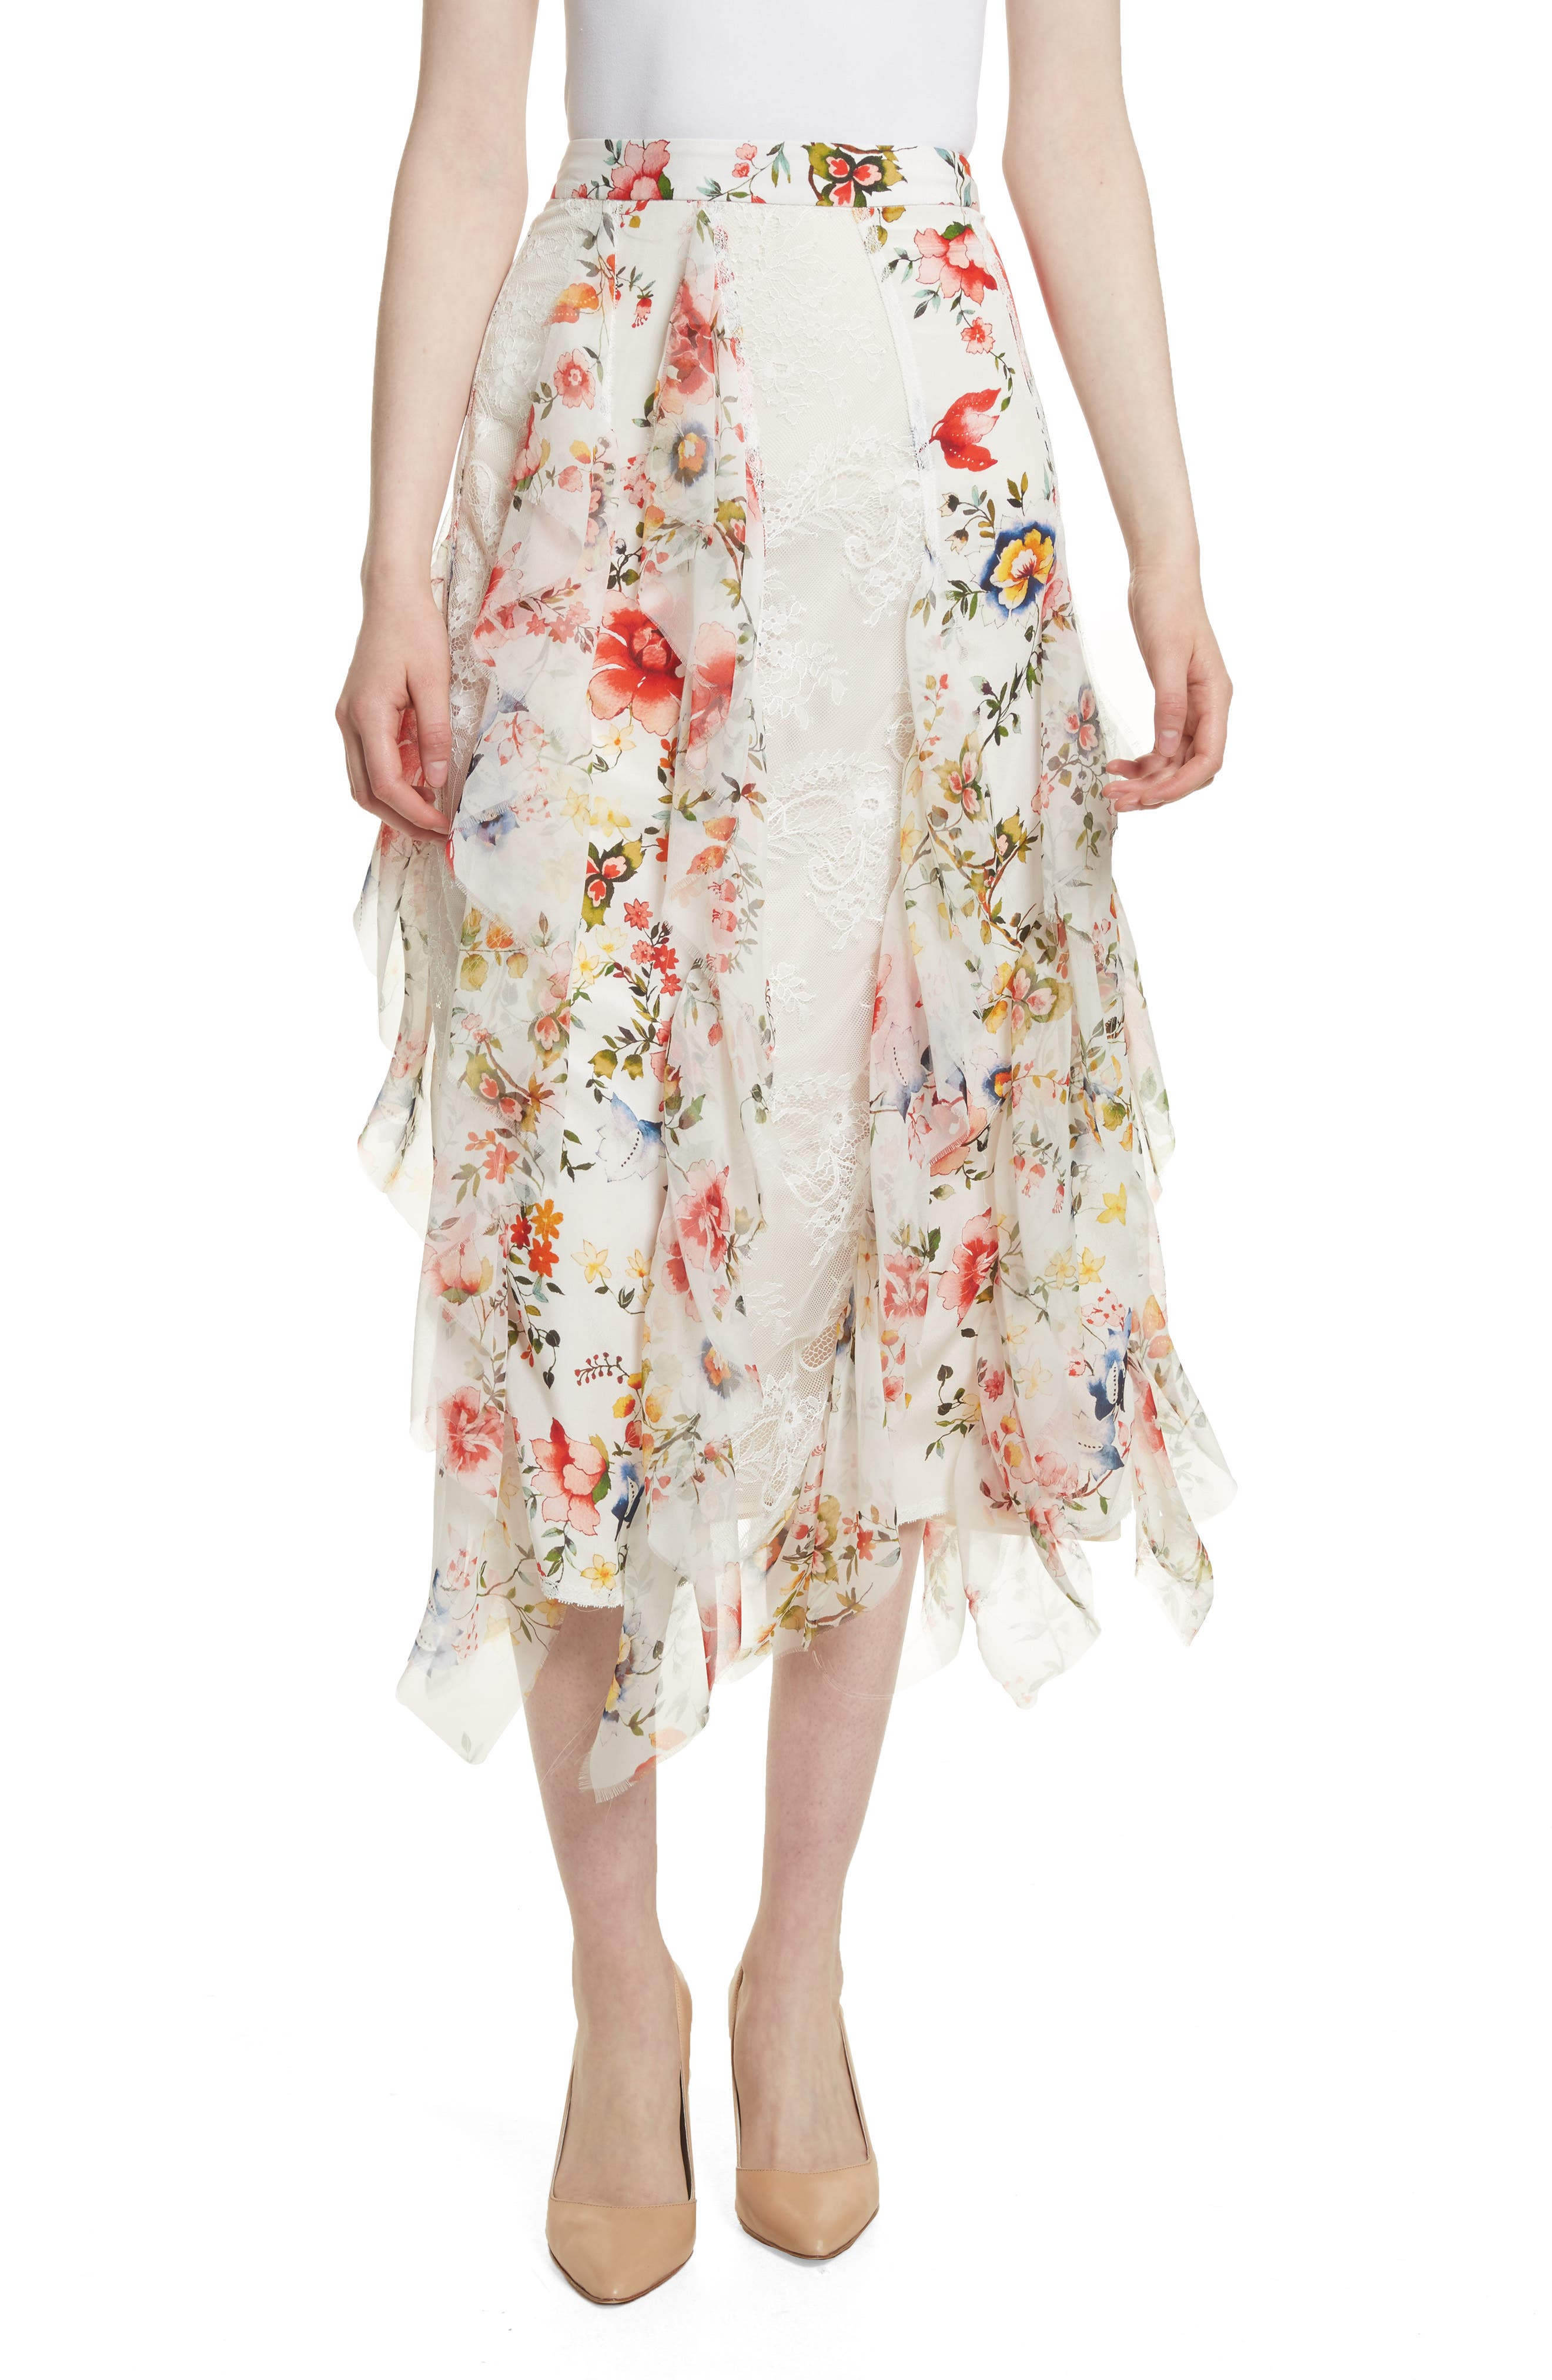 Yula Floral Silk & Lace Midi Skirt,                             Main thumbnail 1, color,                             Floral Soiree-Soft White